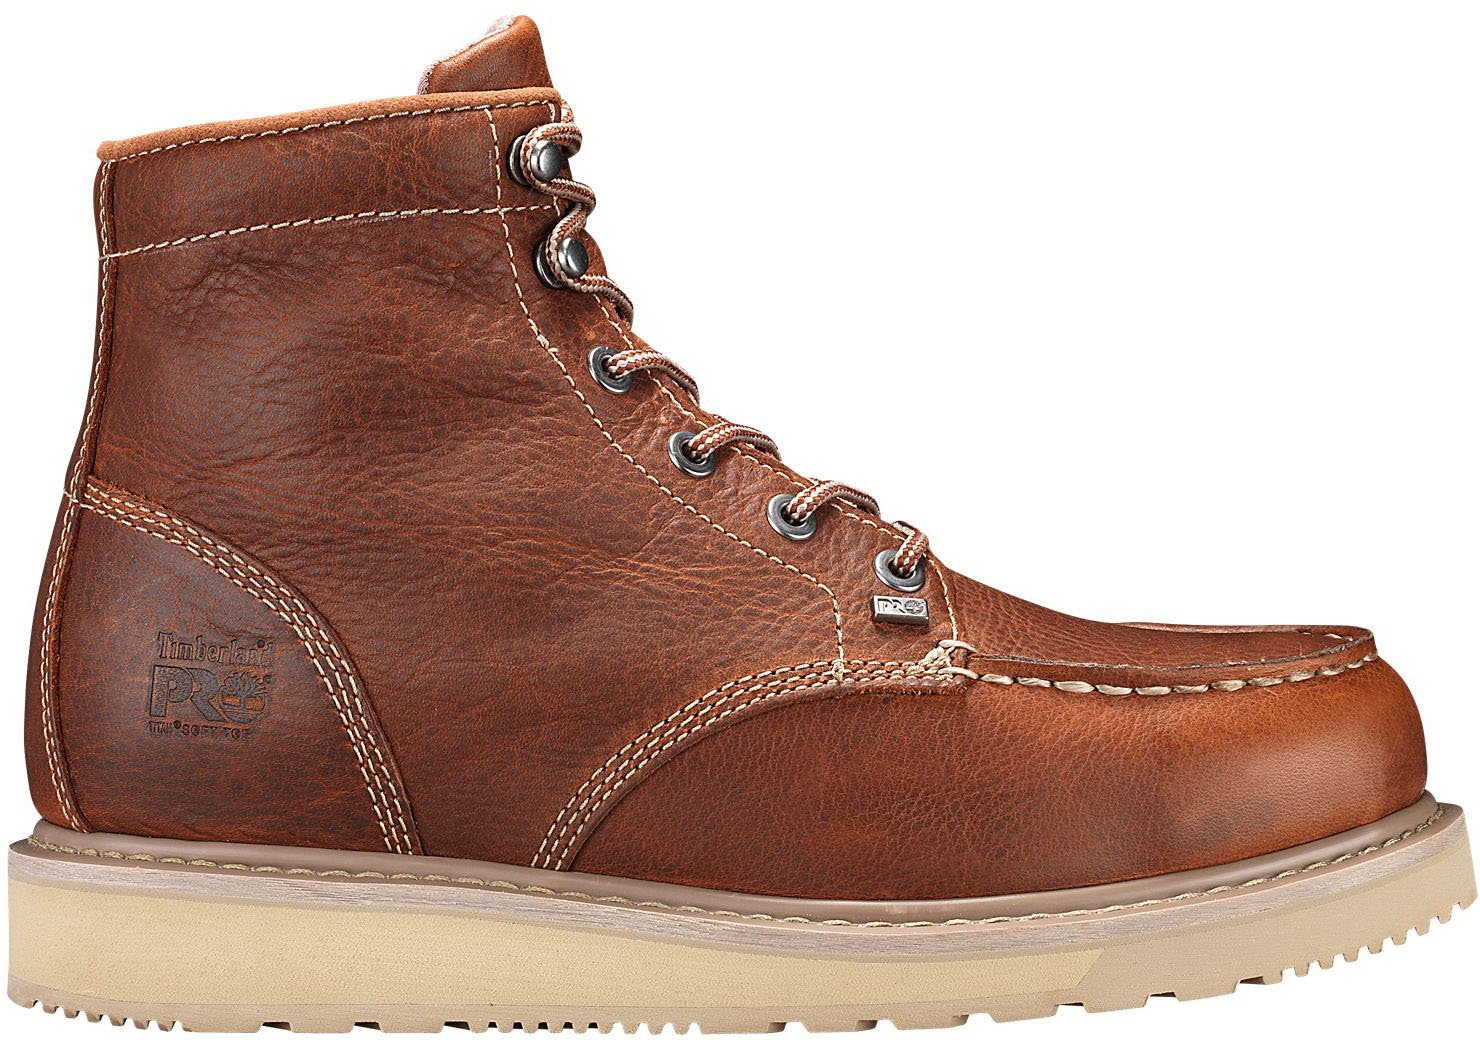 Timberland PRO Men's Barstow Wedge Work Boot,Brown,10 M US